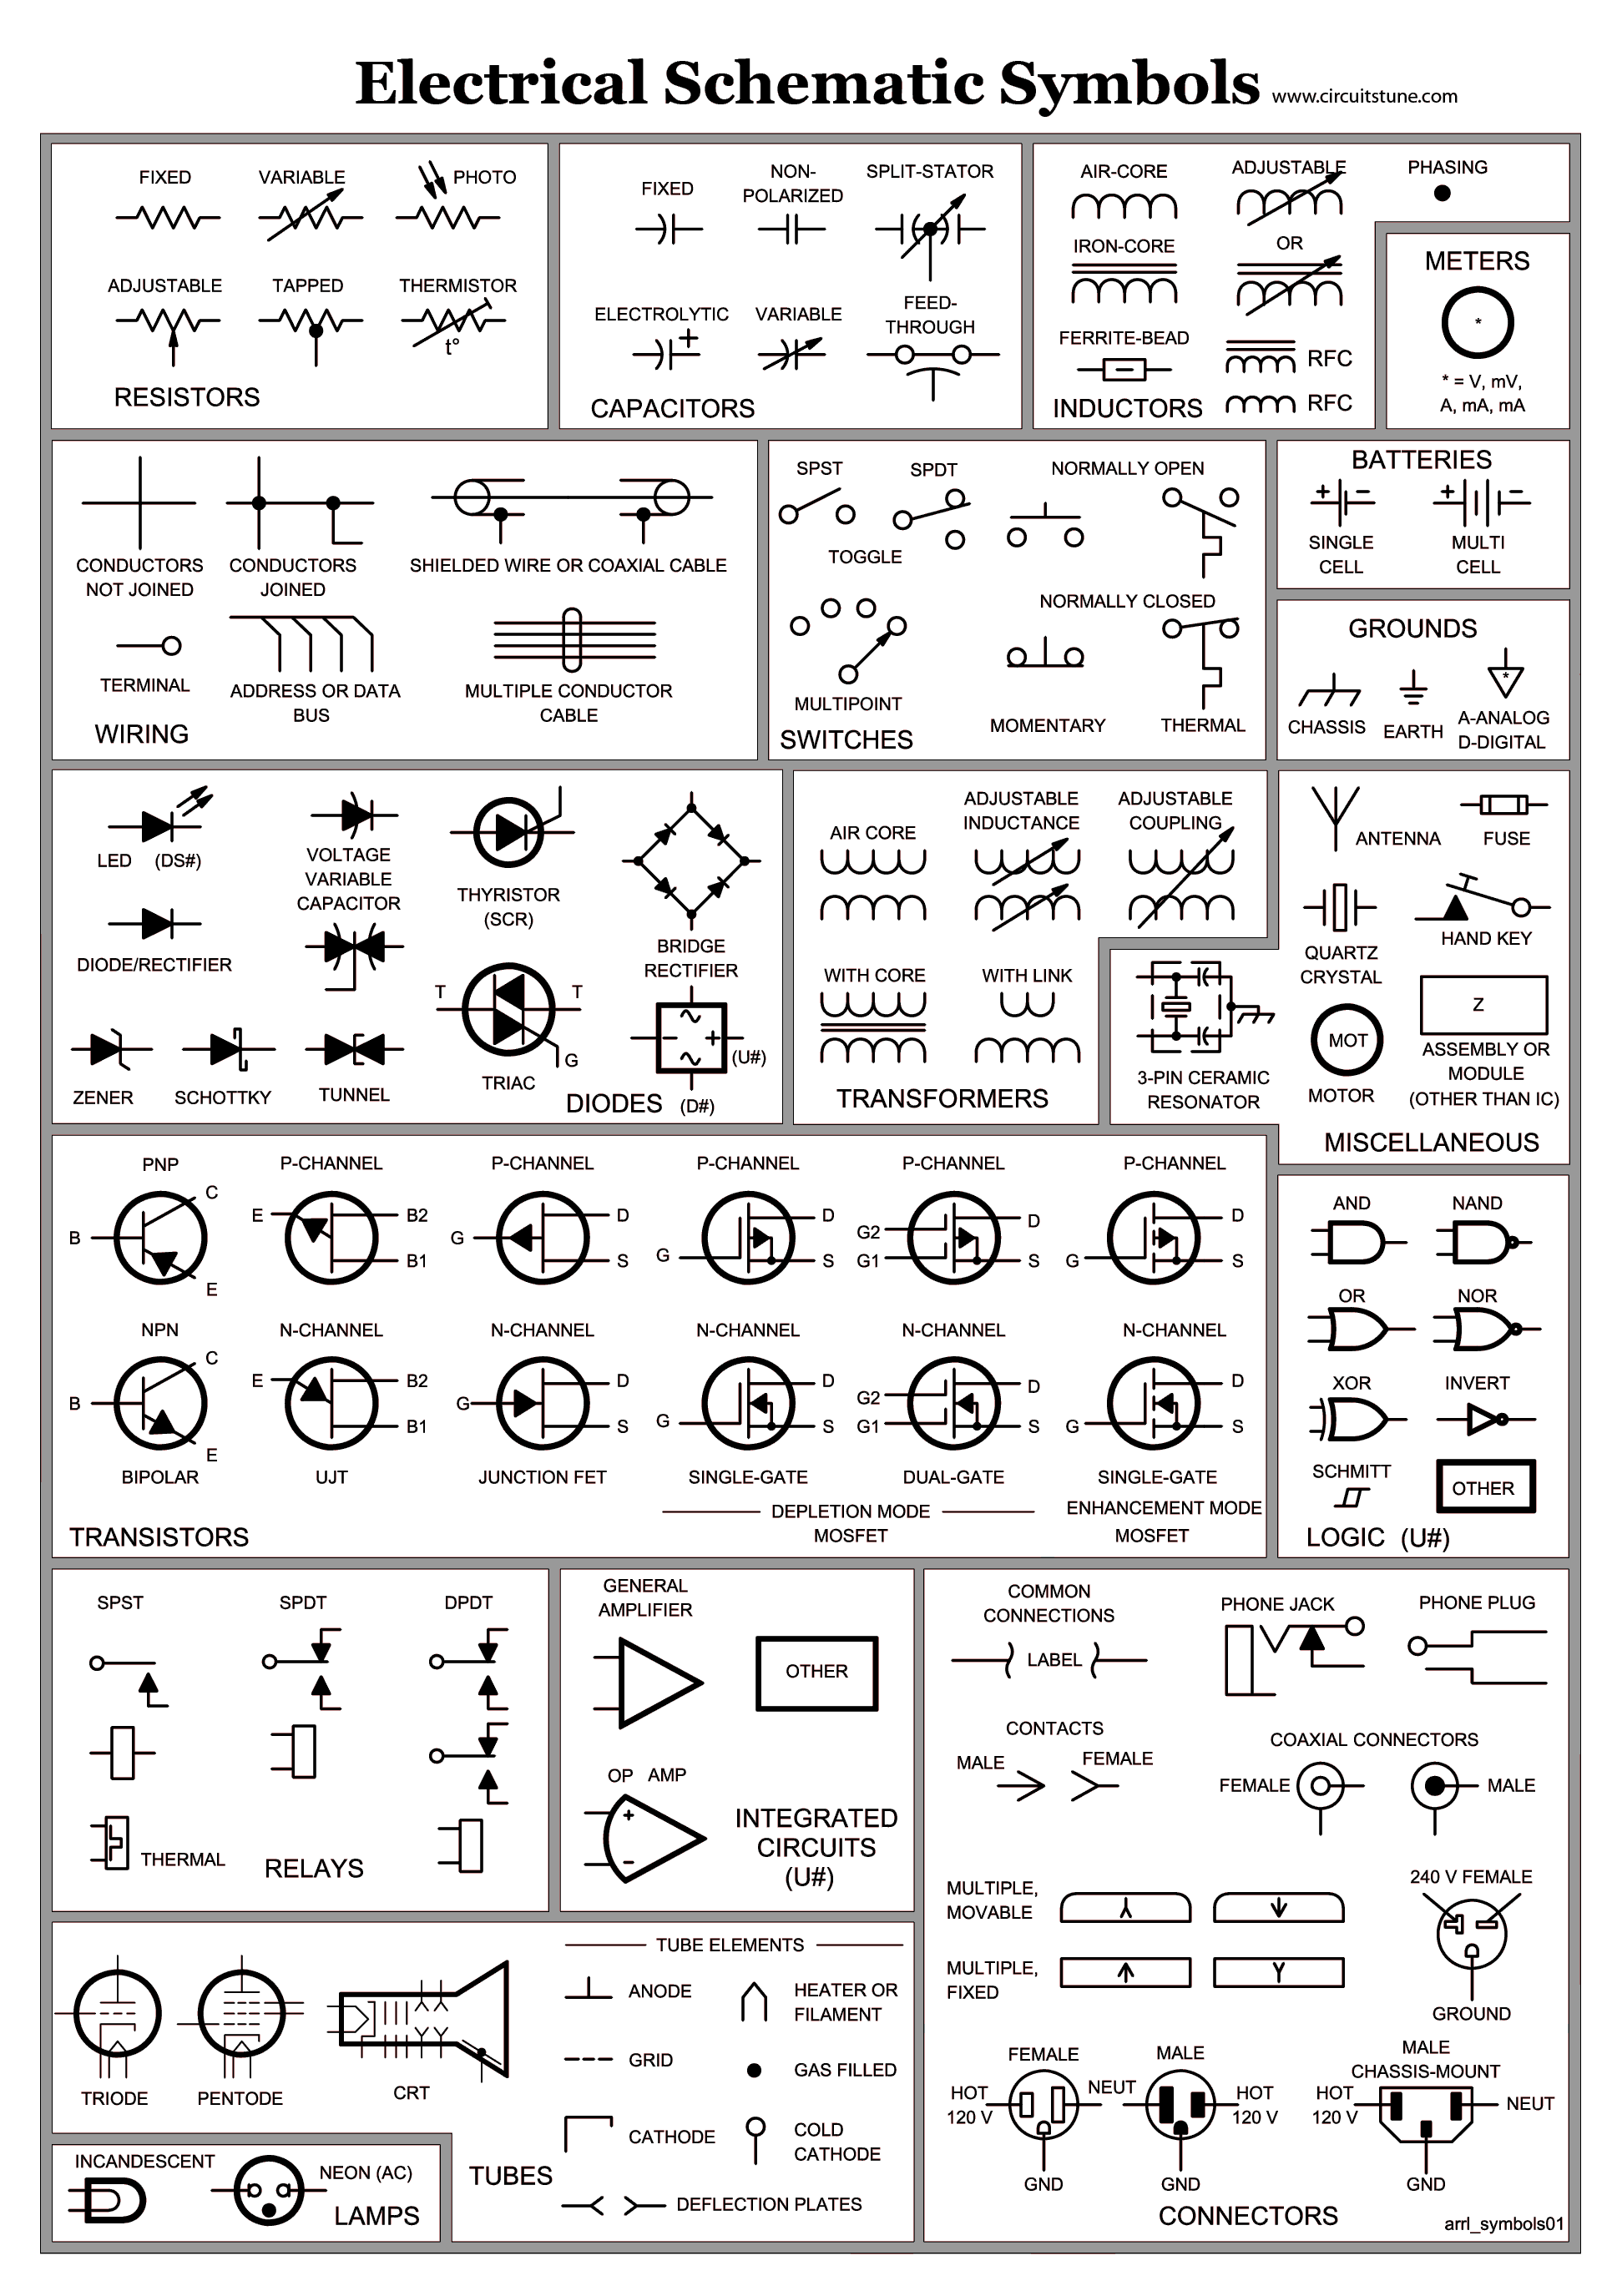 Electrical schematic symbols wire diagram symbols automotive wiring electrical schematic symbols wire diagram symbols automotive wiring schematic cheapraybanclubmaster Gallery